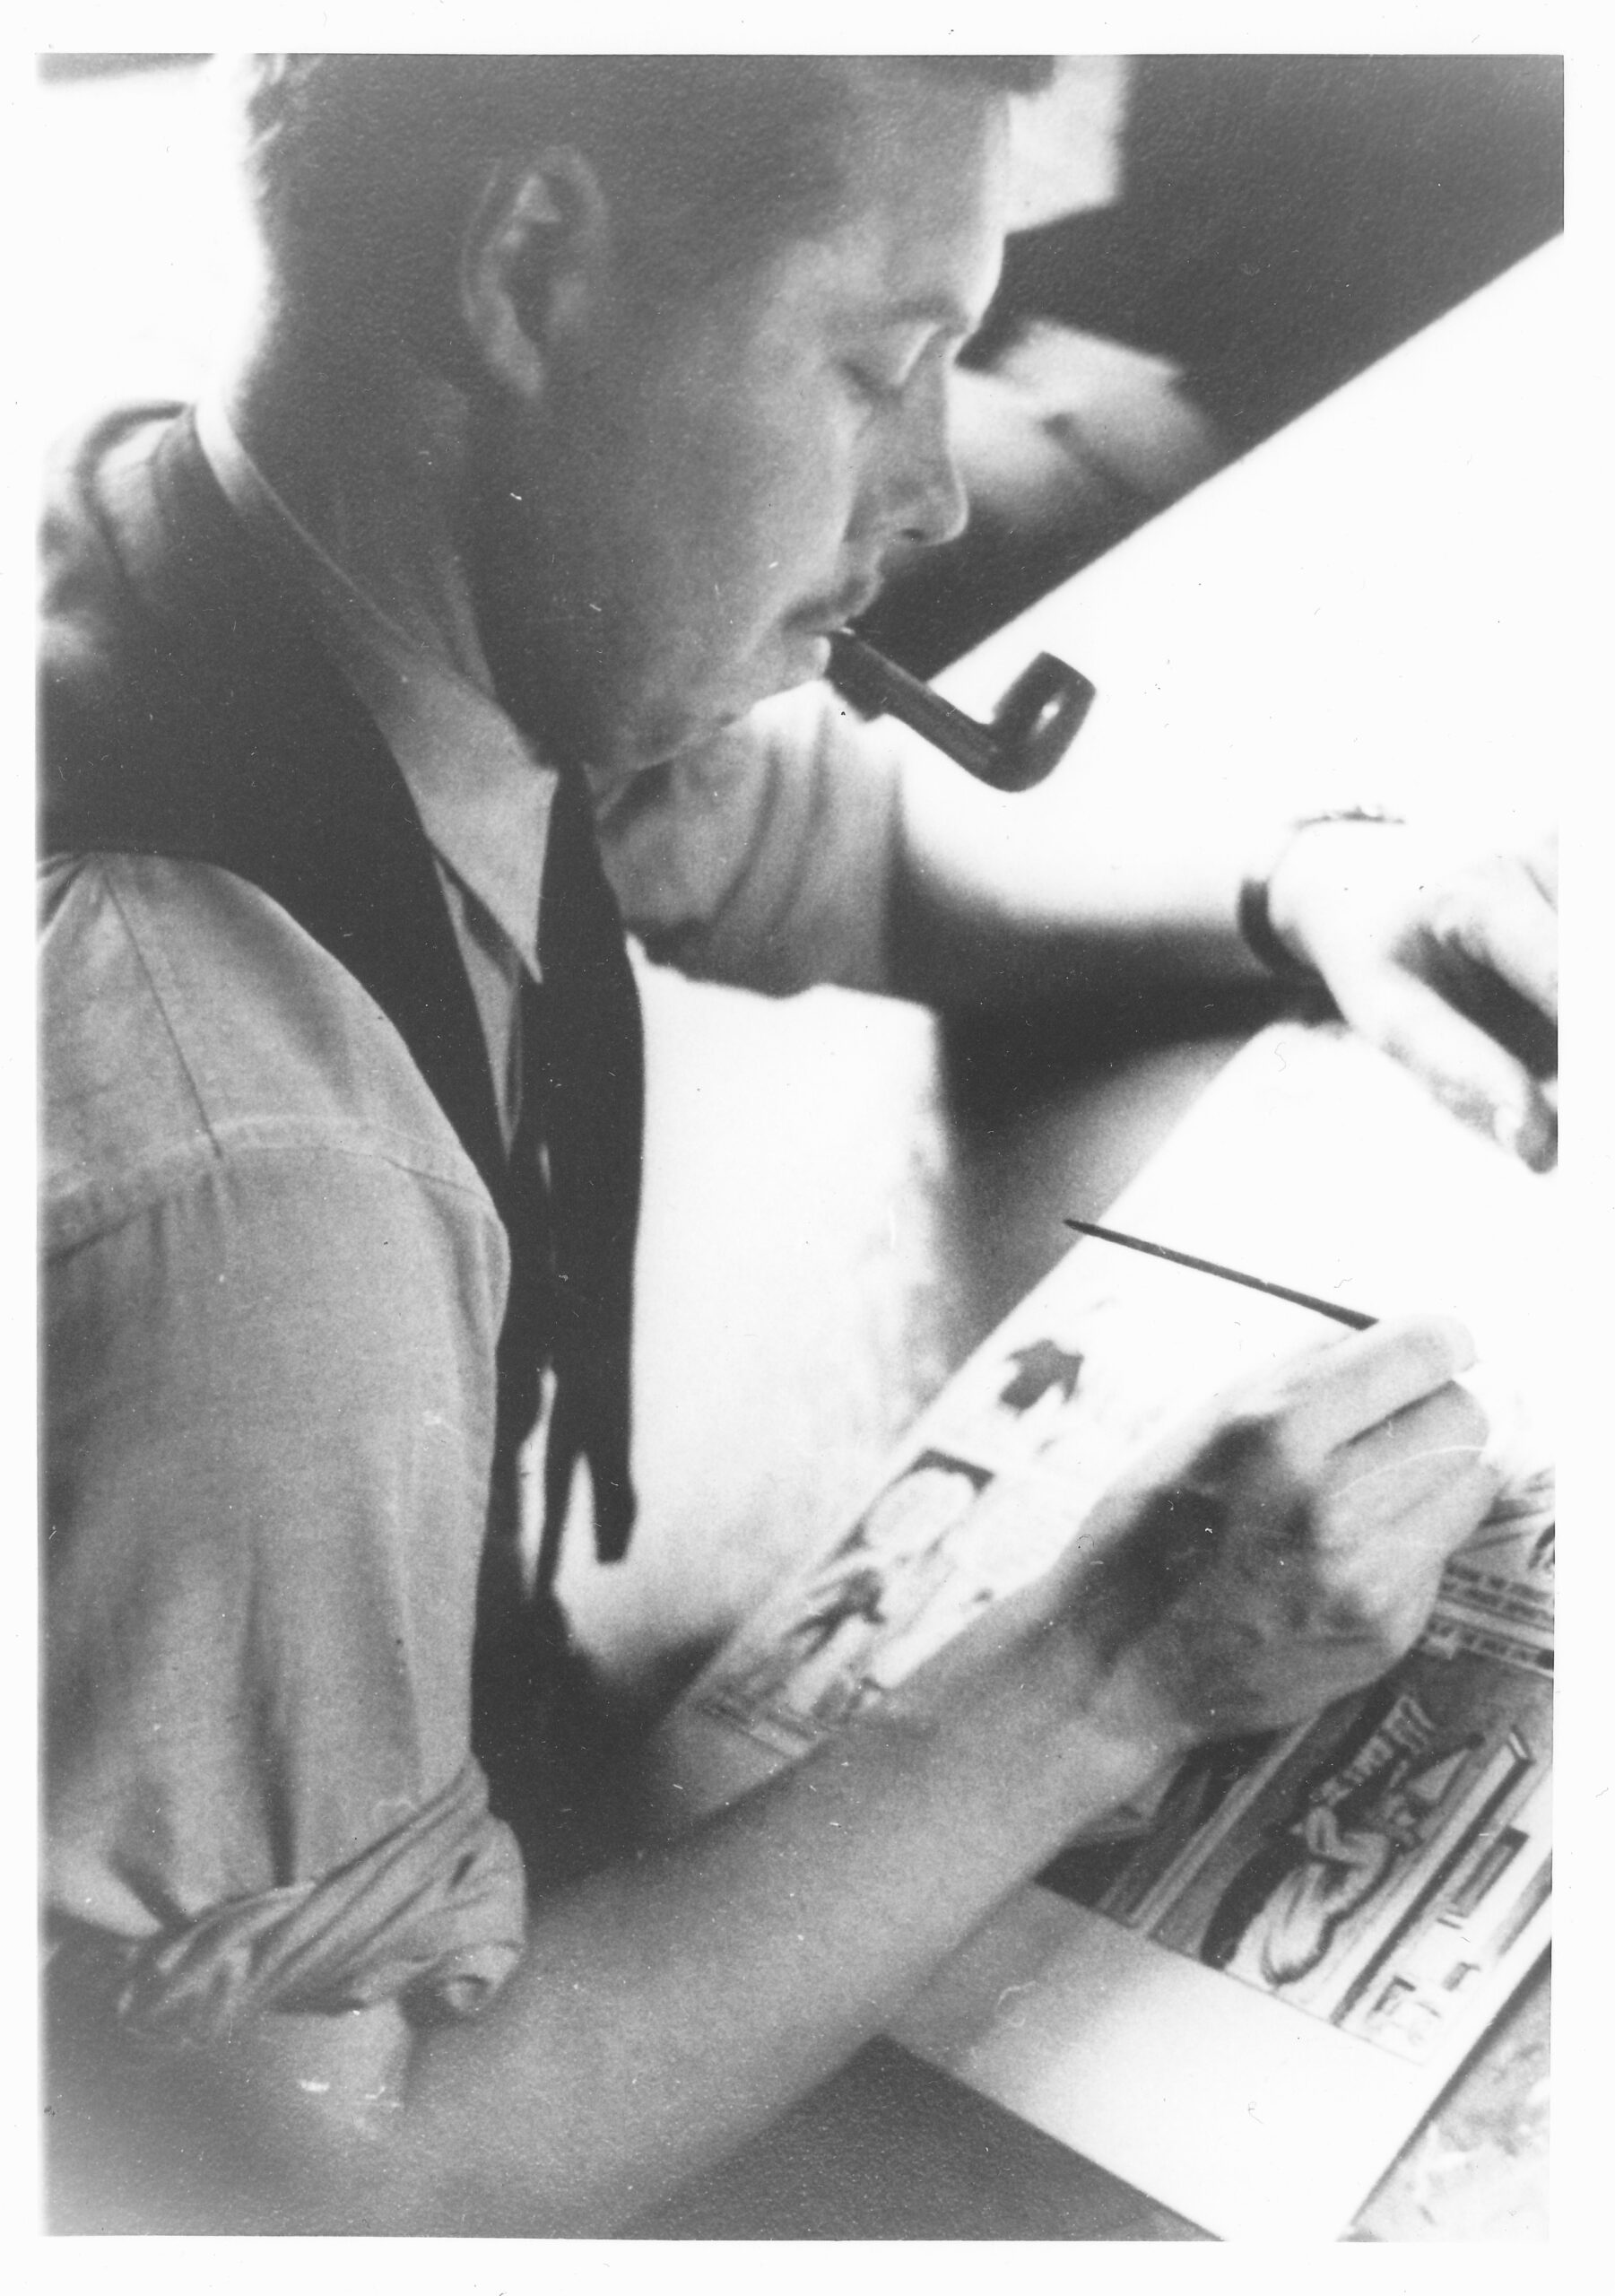 C:\Users\Robert\Documents\CARTOONING ILLUSTRATION ANIMATION\IMAGE OF PERSON\F\FURNESS Ed, in his studio, 1943-44.jpg